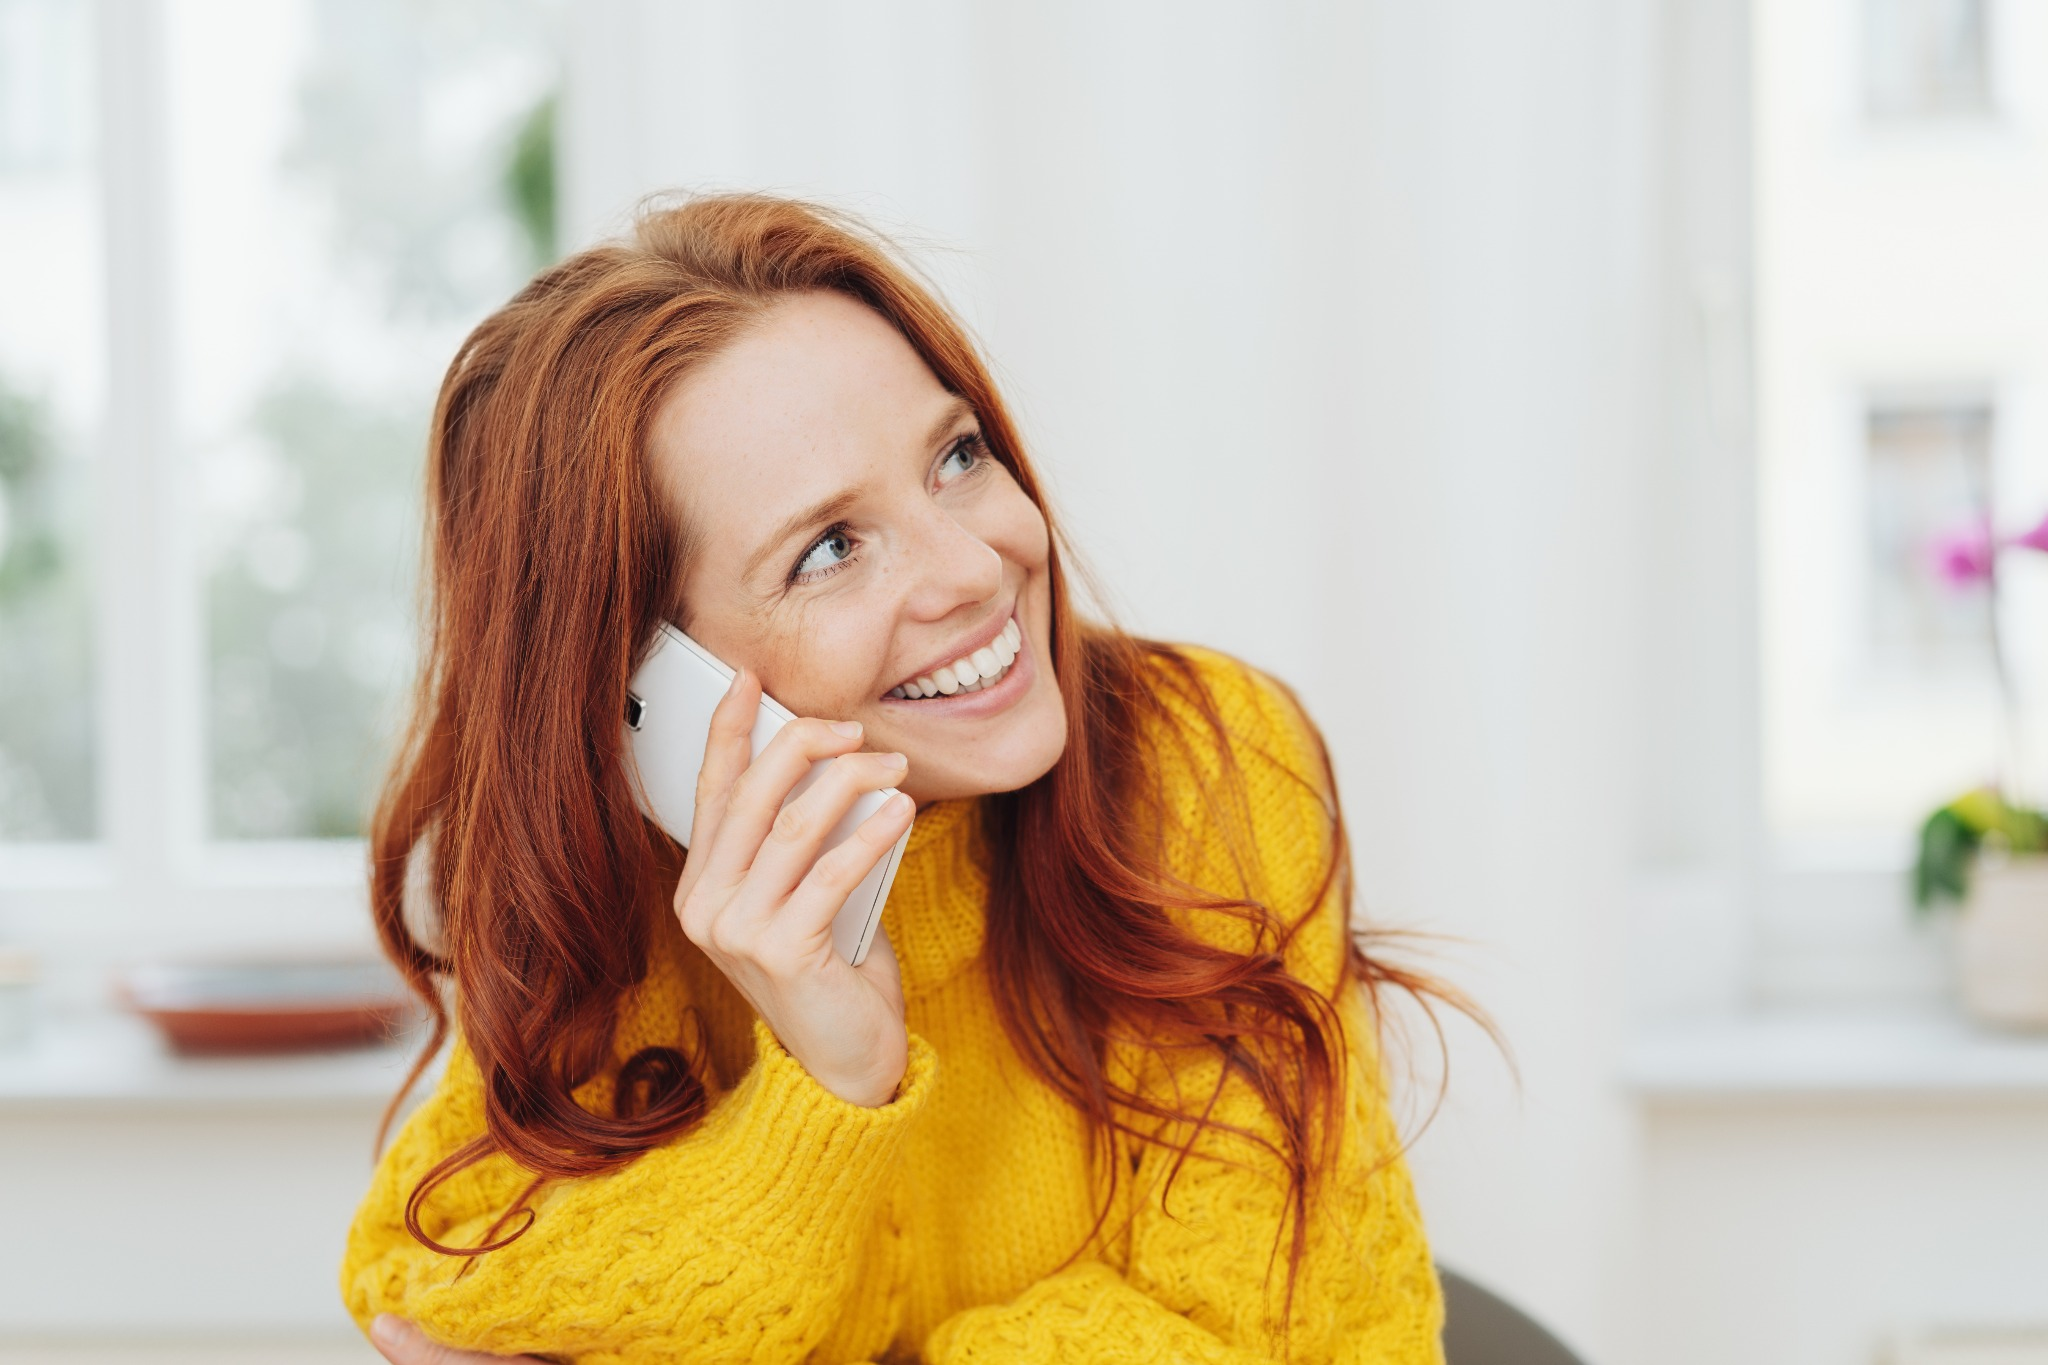 """A red-headed woman talking on the phone and smiling, asking how someone is, or the Welsh phrase """"Su'mae"""""""